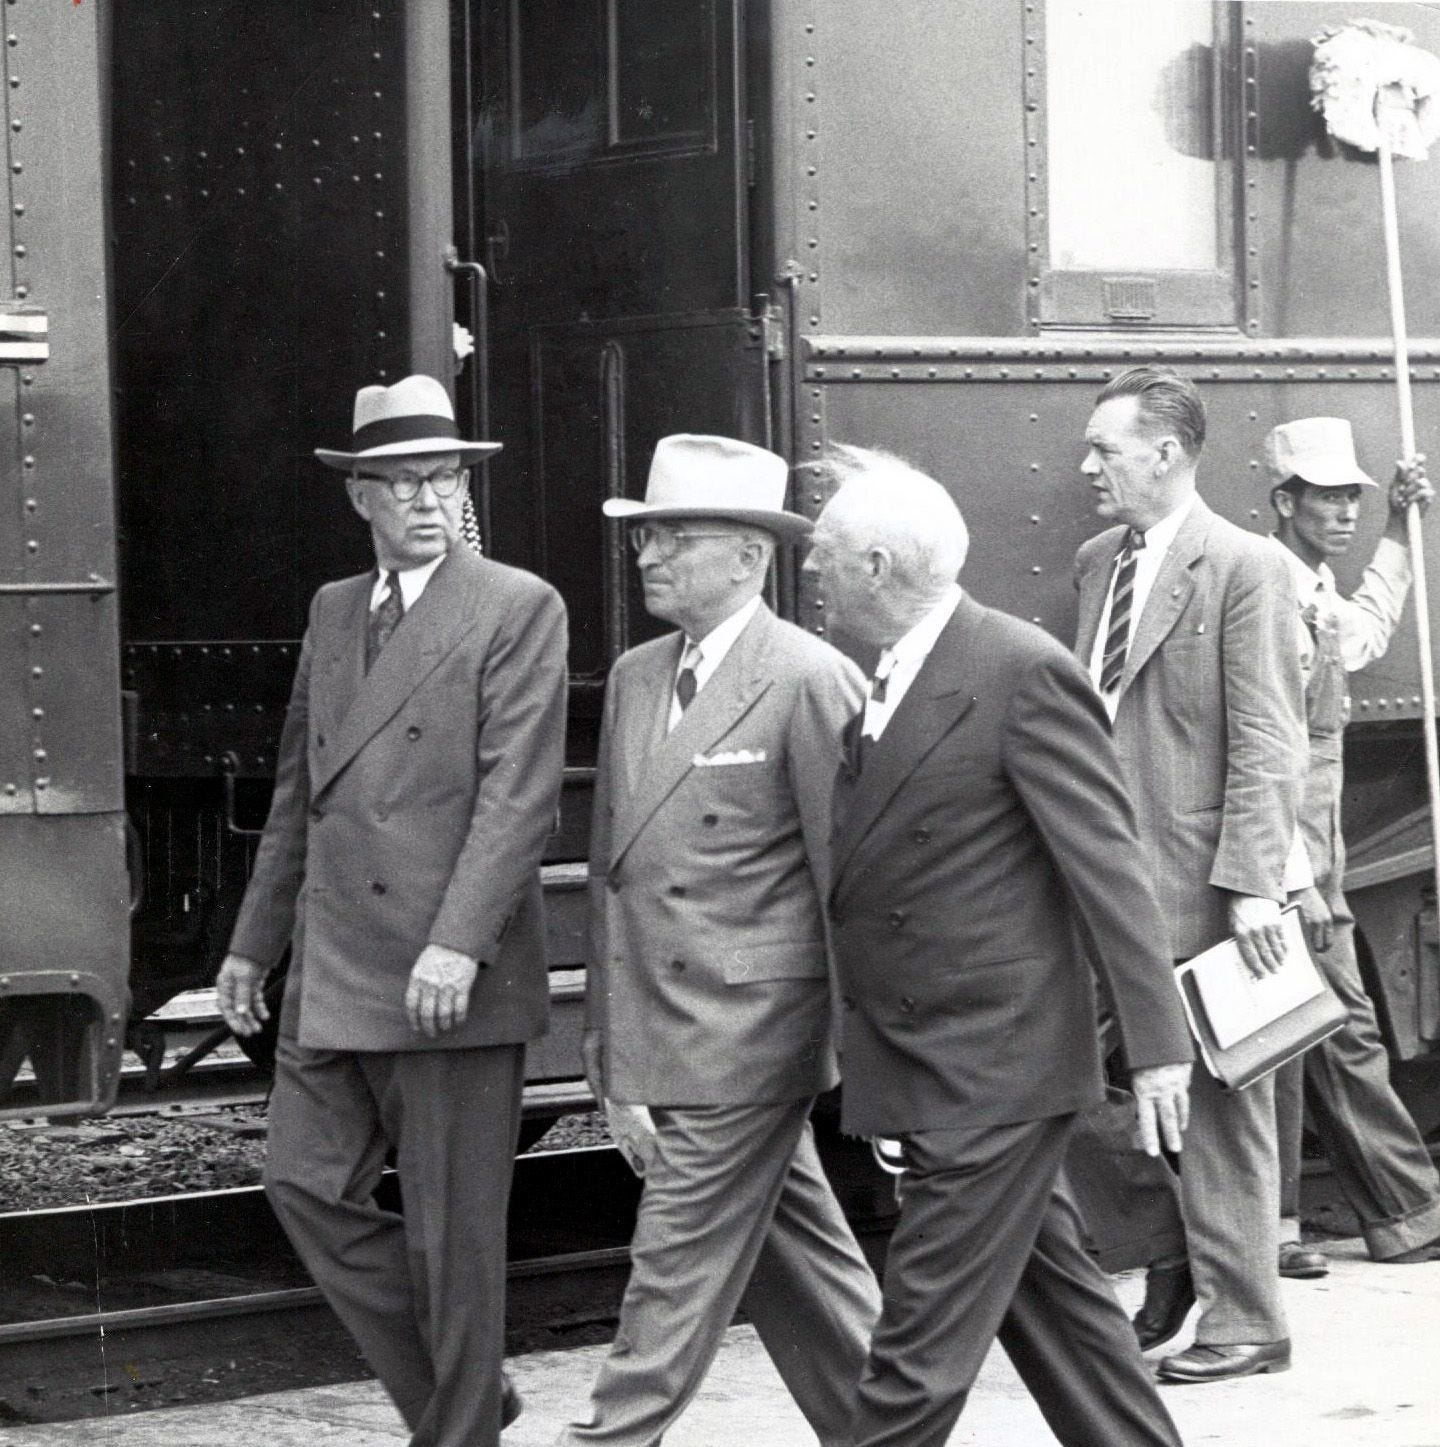 Past presidential visits: Harry Truman in 1948